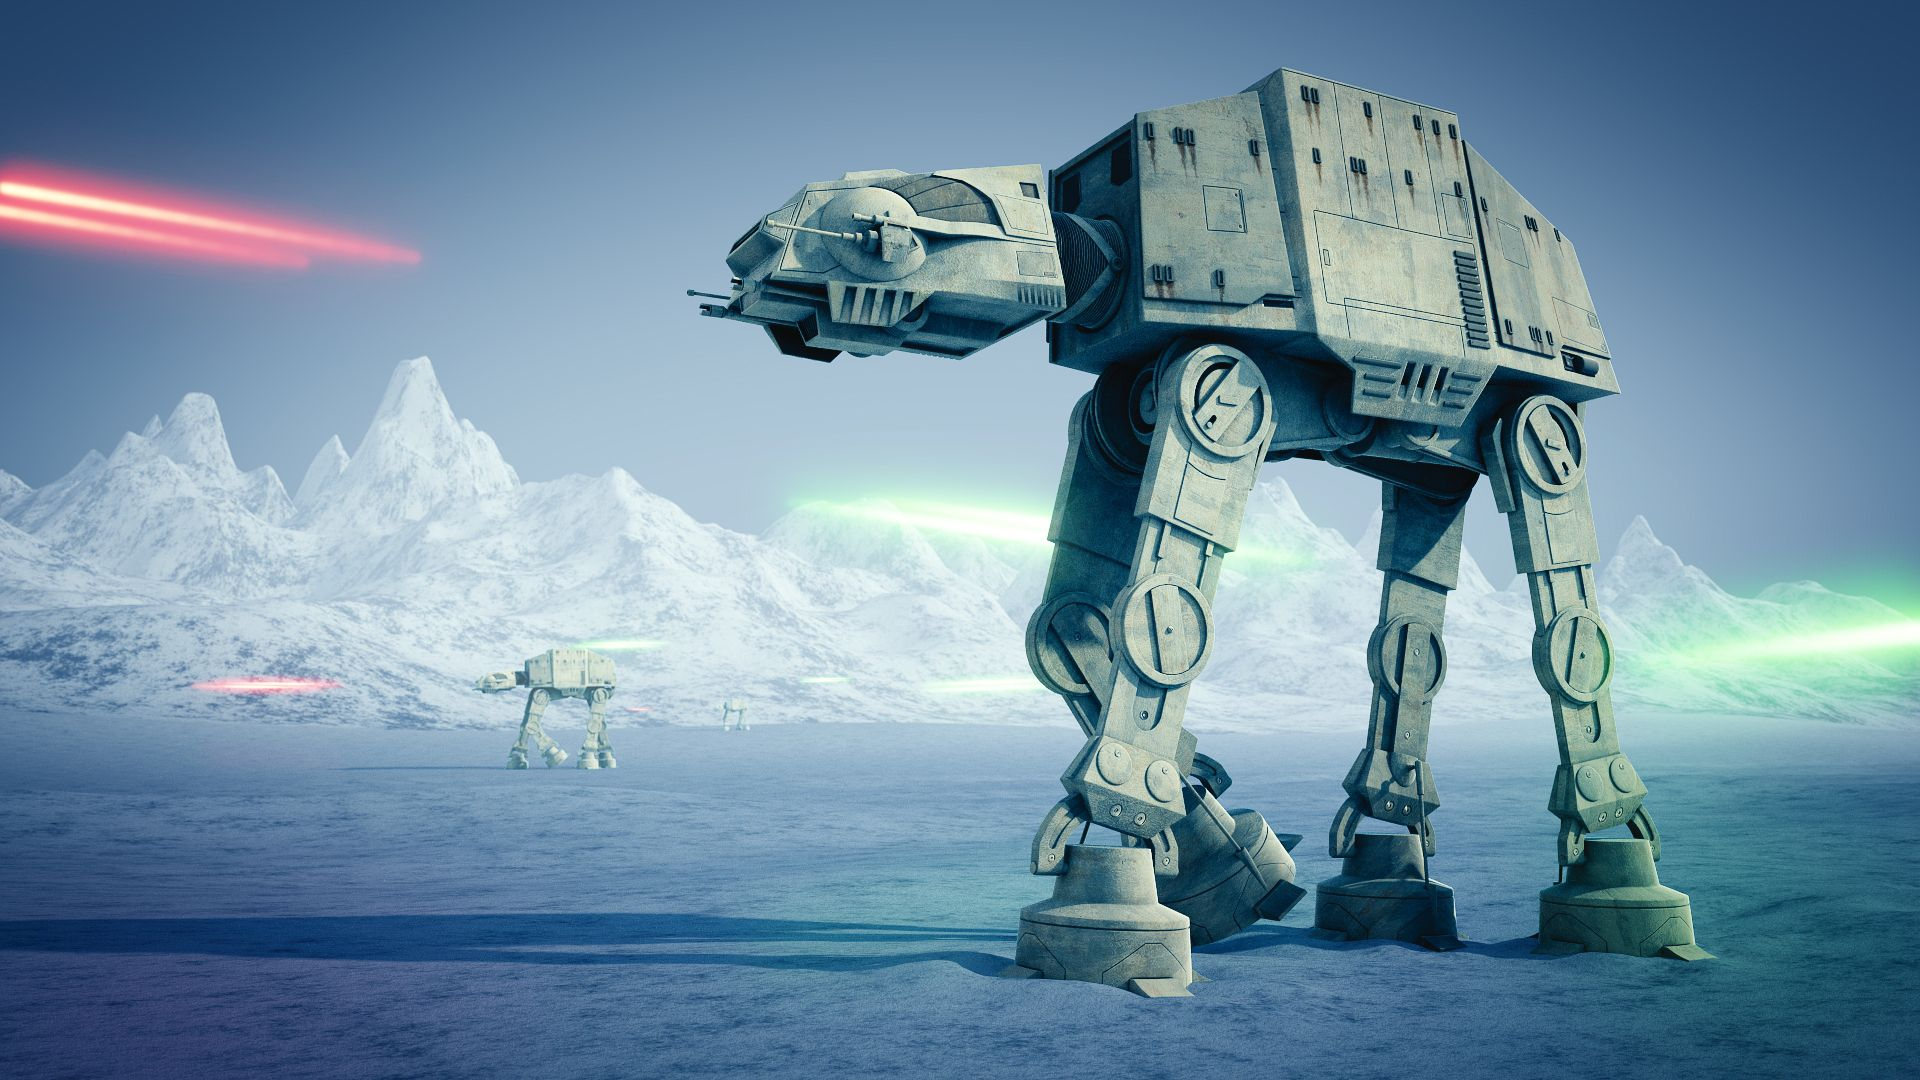 At At Backgrounds Free Download With Images Star Wars Vehicles